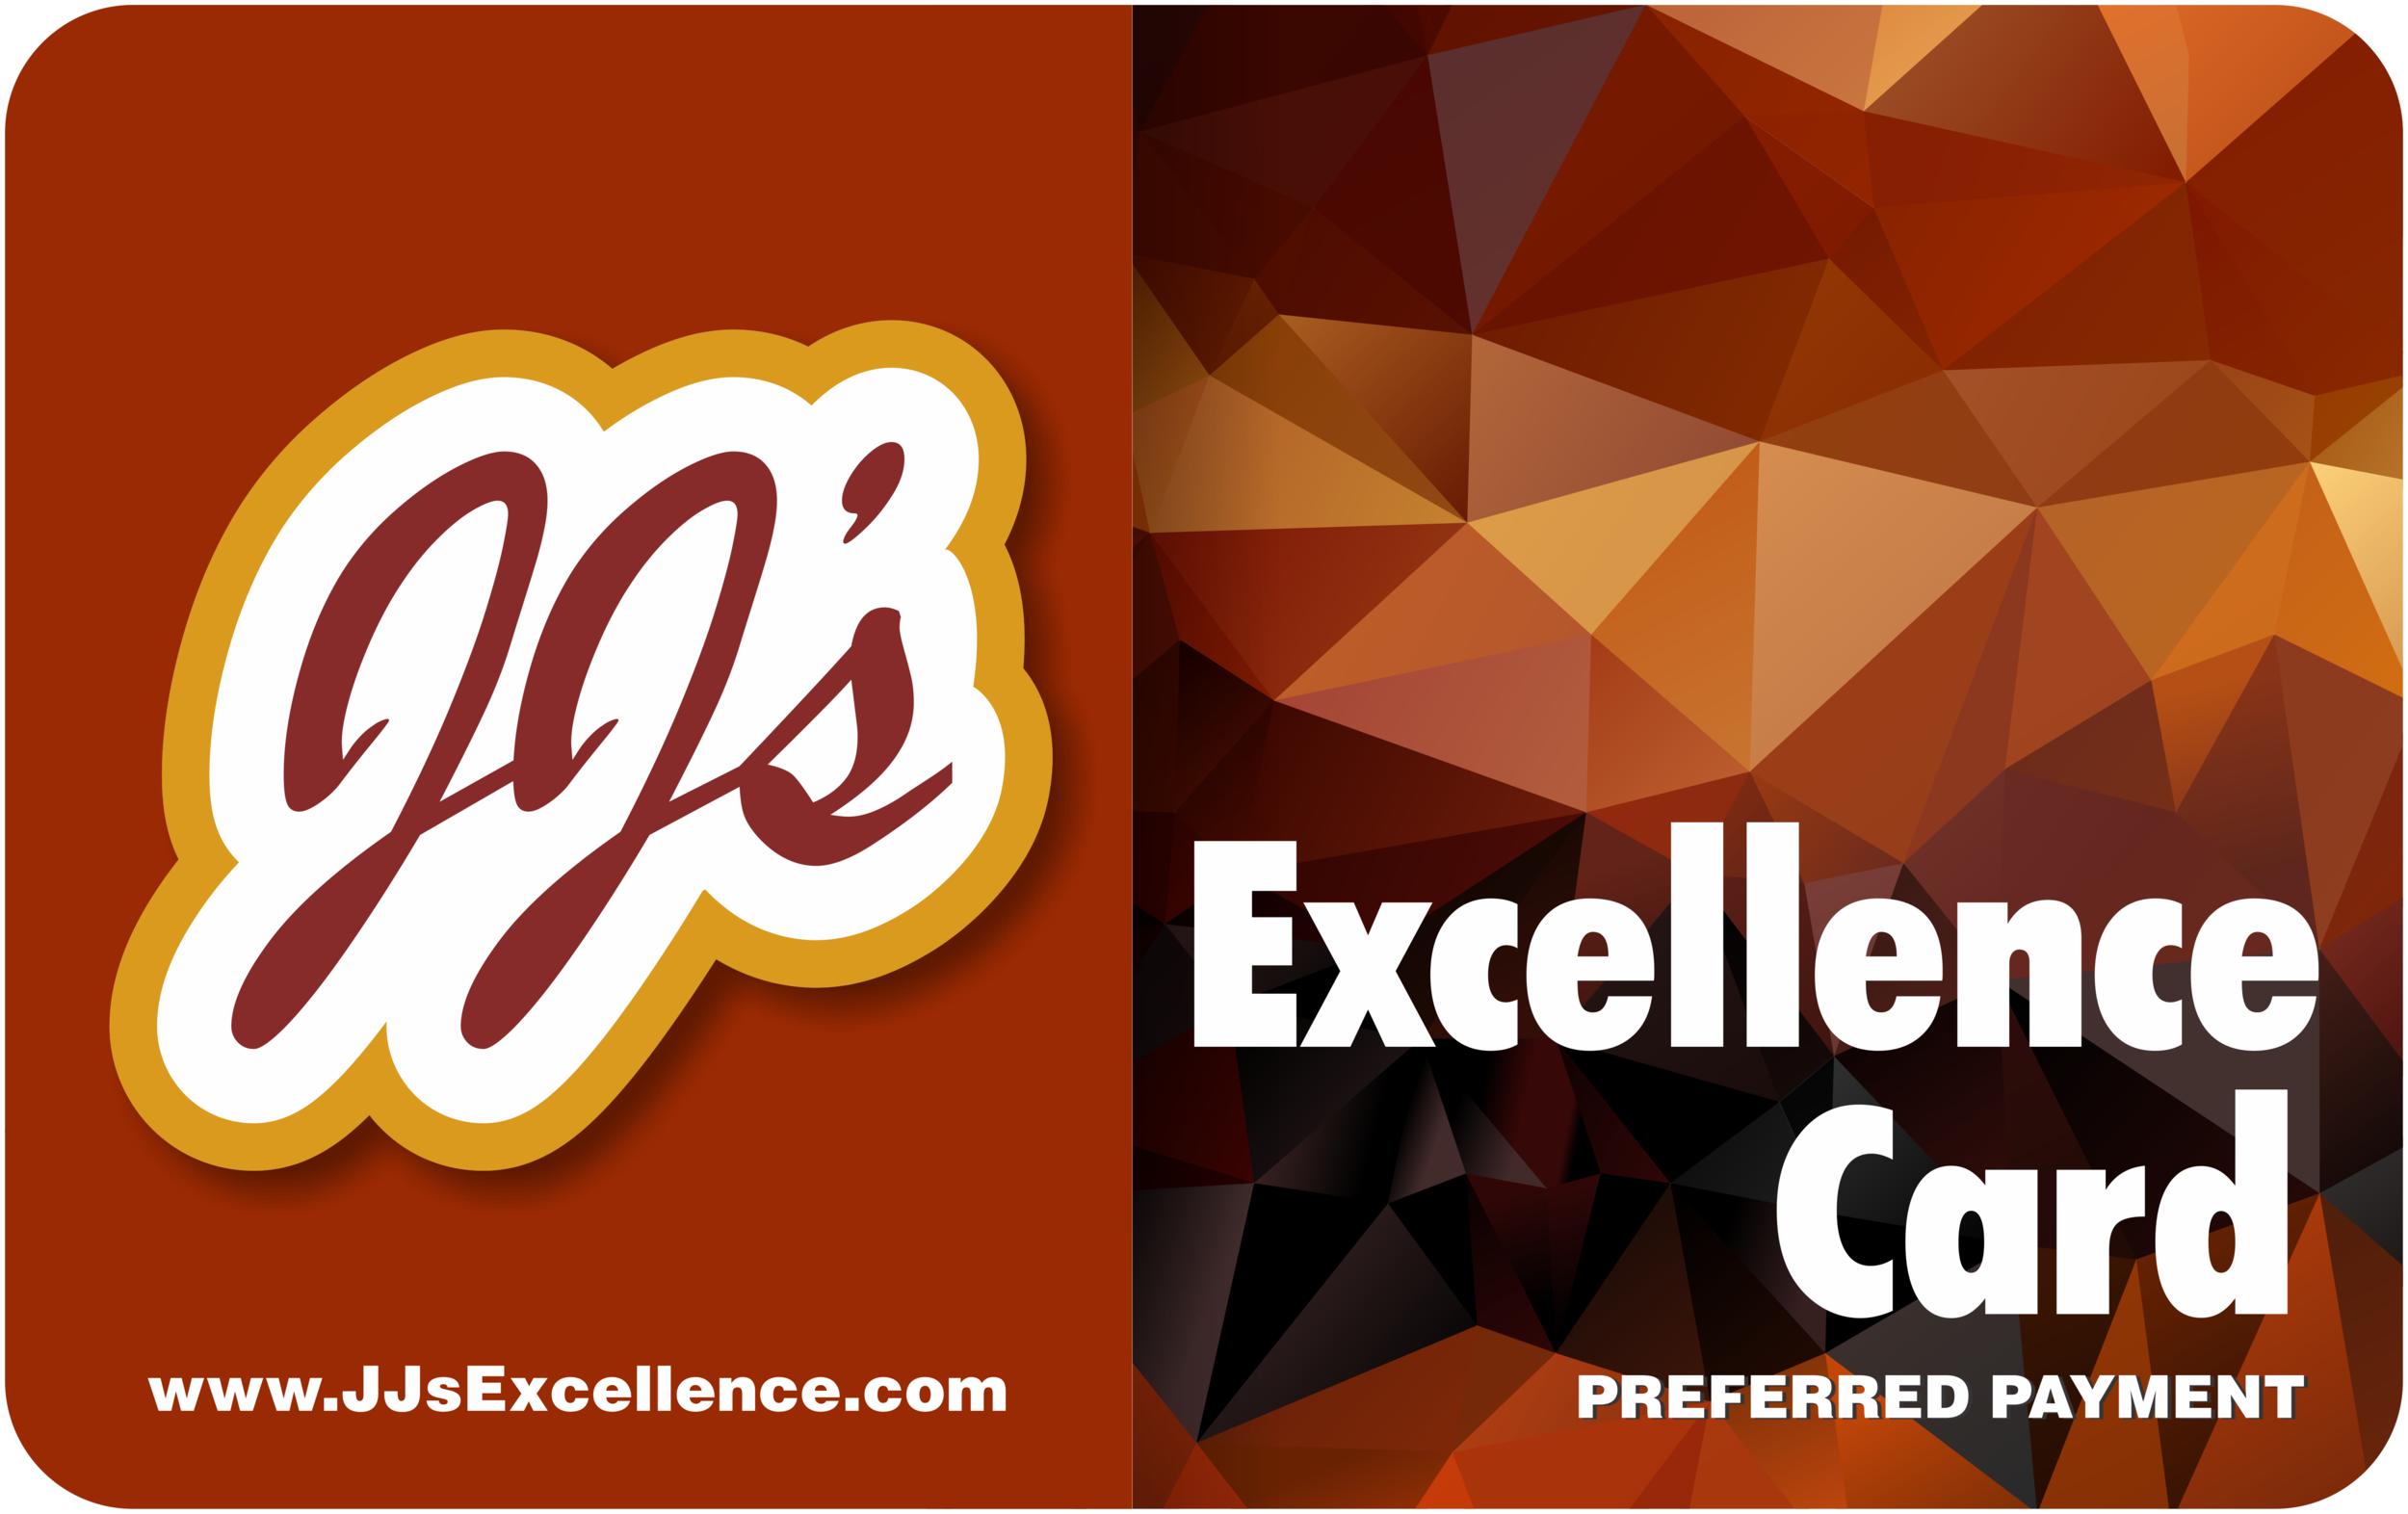 JJ's Excellence Card - Save 7 Cents on Every Gallon!